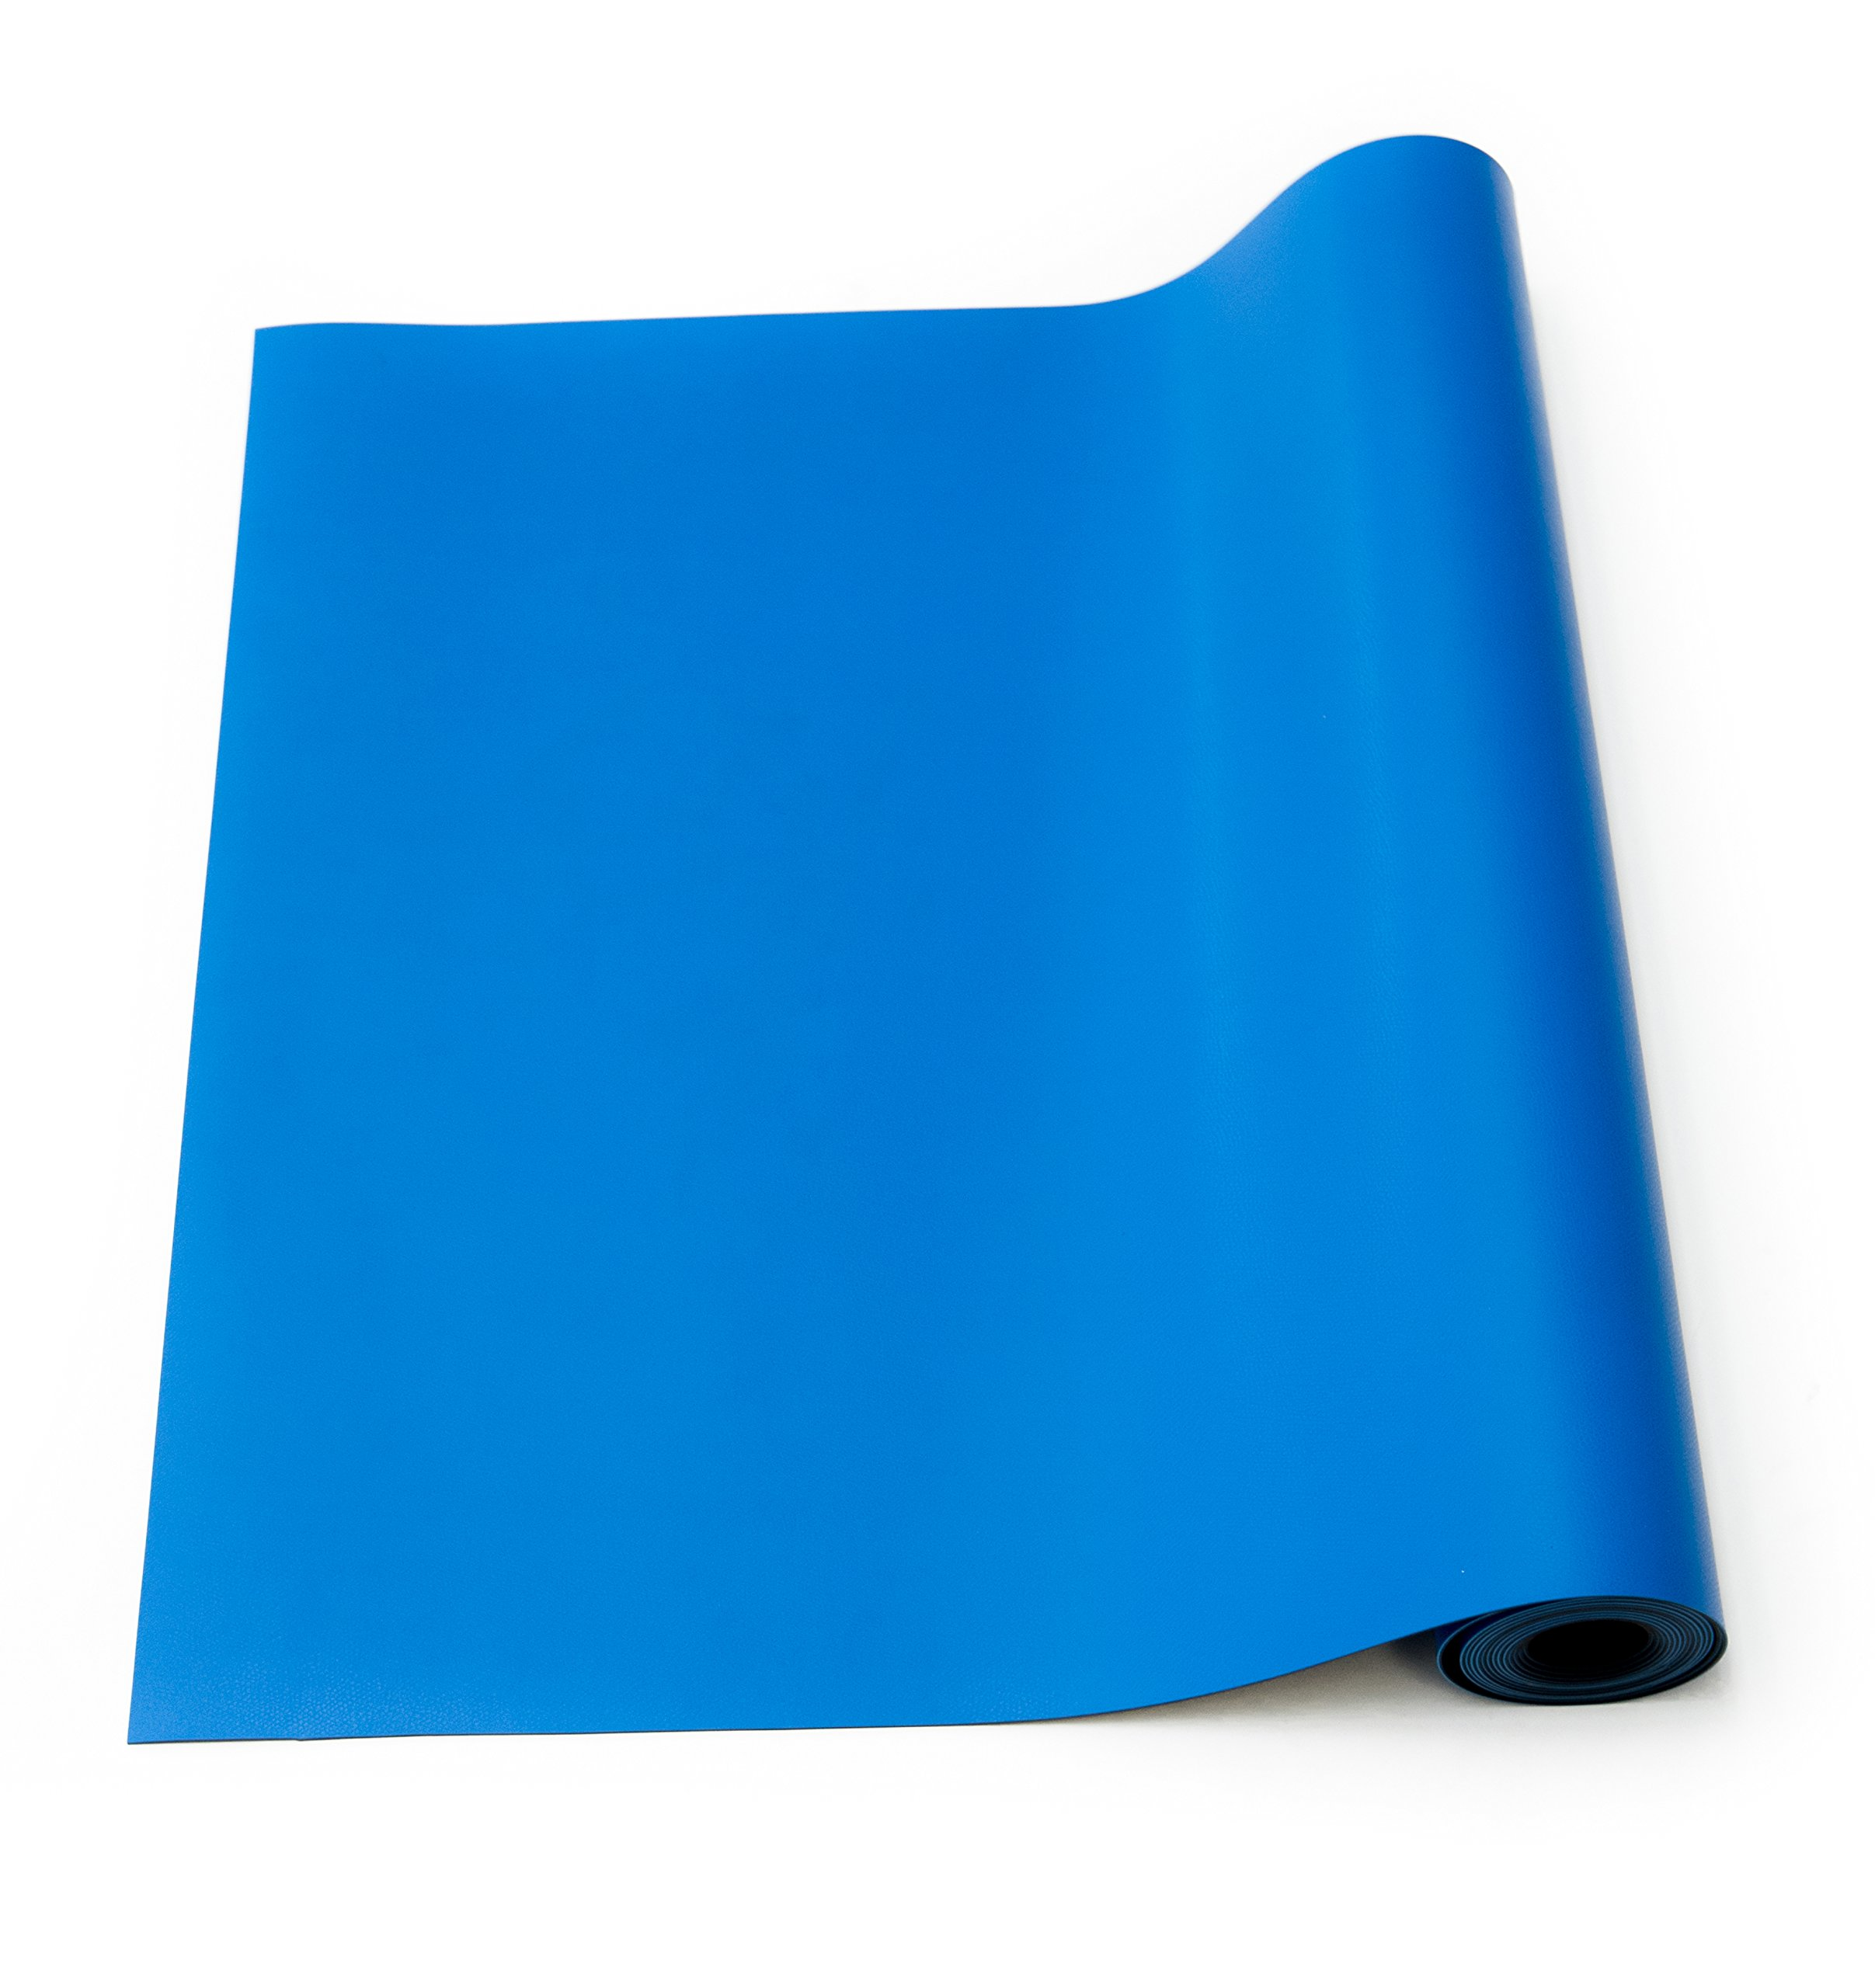 Bertech ESD High Temperature Rubber Mat Roll, 3' Wide x 20' Long x 0.08'' Thick, Blue, Made in USA